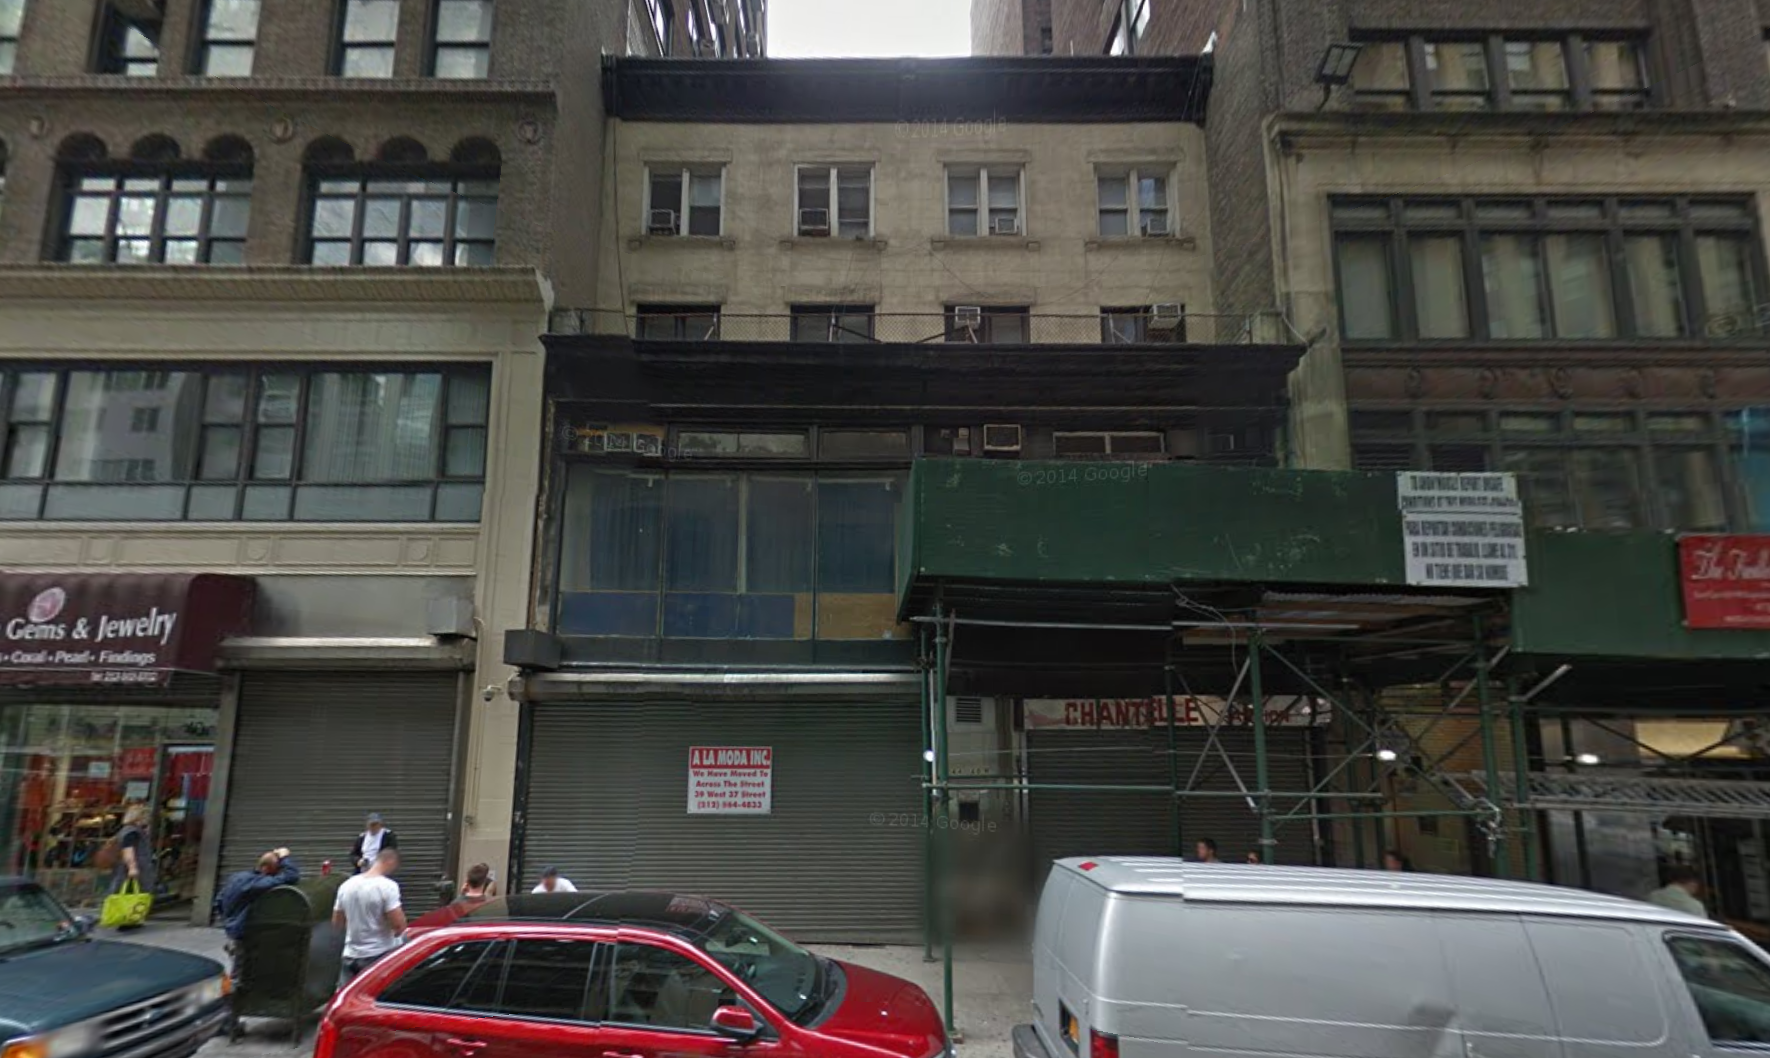 44 West 37th Street in October 2014, image via Google Maps